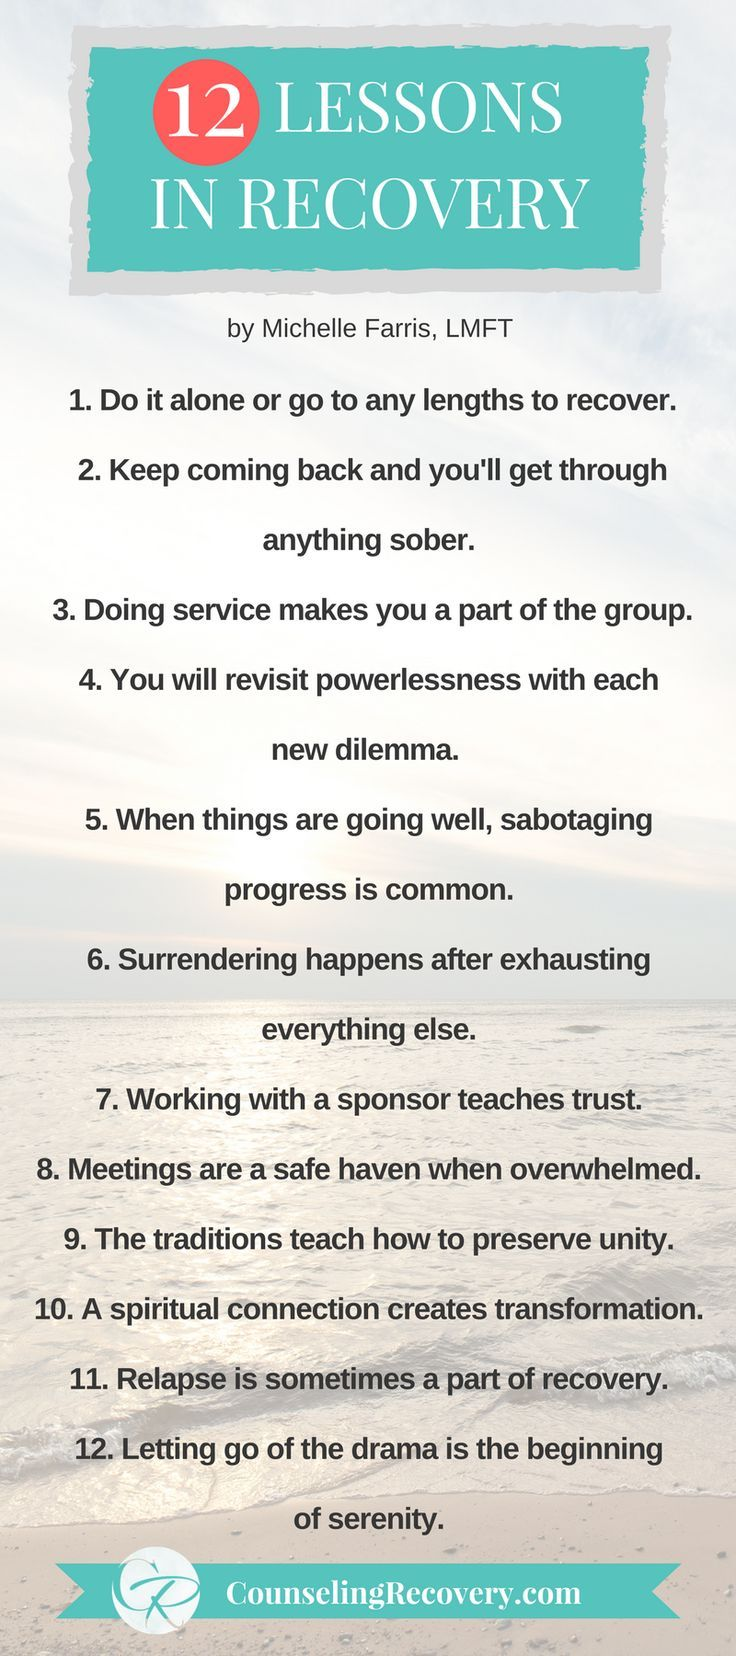 Worksheets 12 Step Recovery Worksheets 12 lessons in recovery and life codependency life